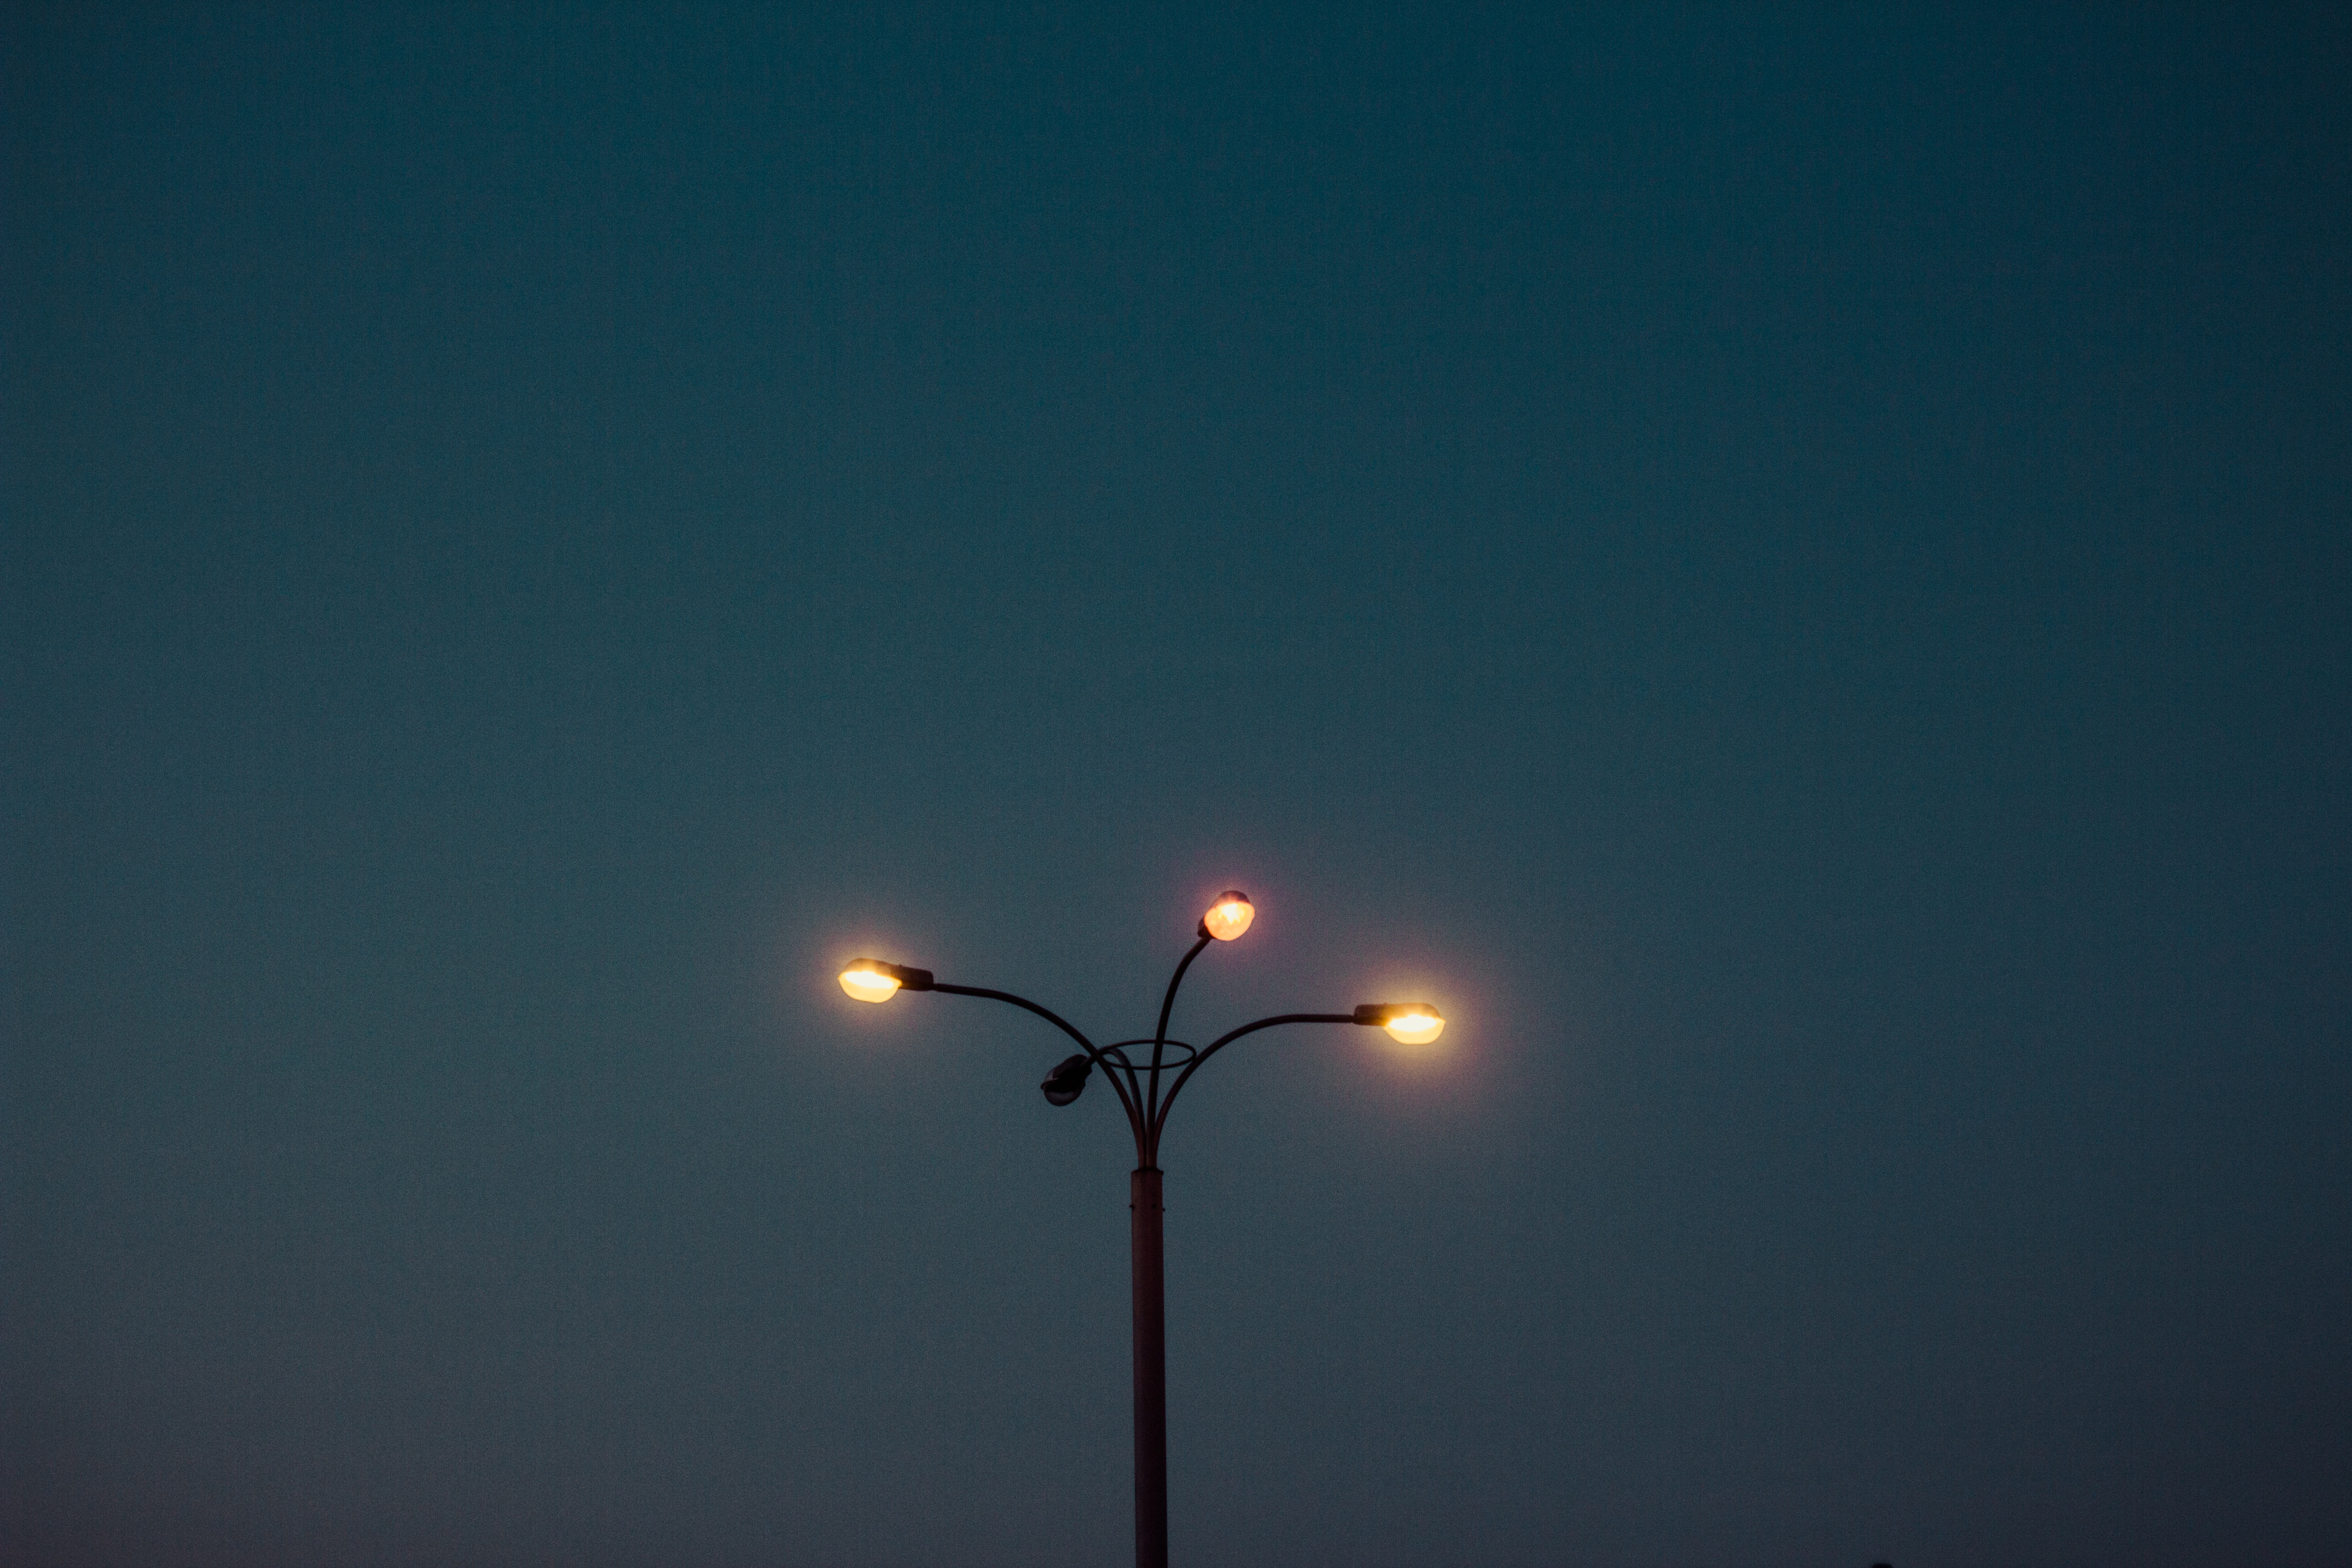 Lamps at night, loneliness, lamp post, lights, night, dark, evening, sky